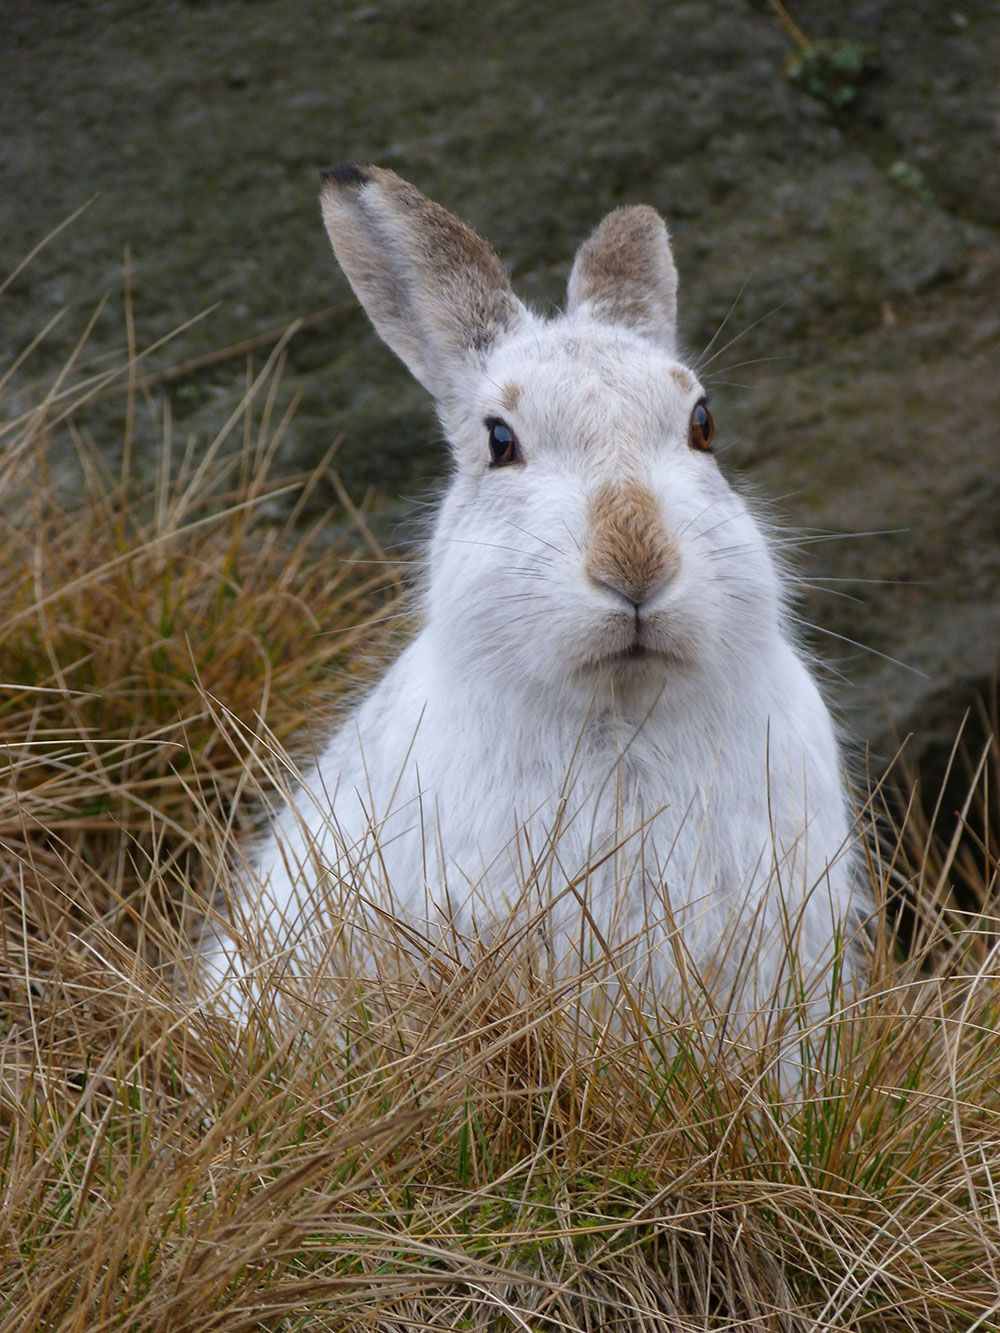 https://ptes.org/ways-to-give/endangered-mountain-hares-fb/mountain-hare-lepus-timidus-2-ken-gartside-credit-fb/